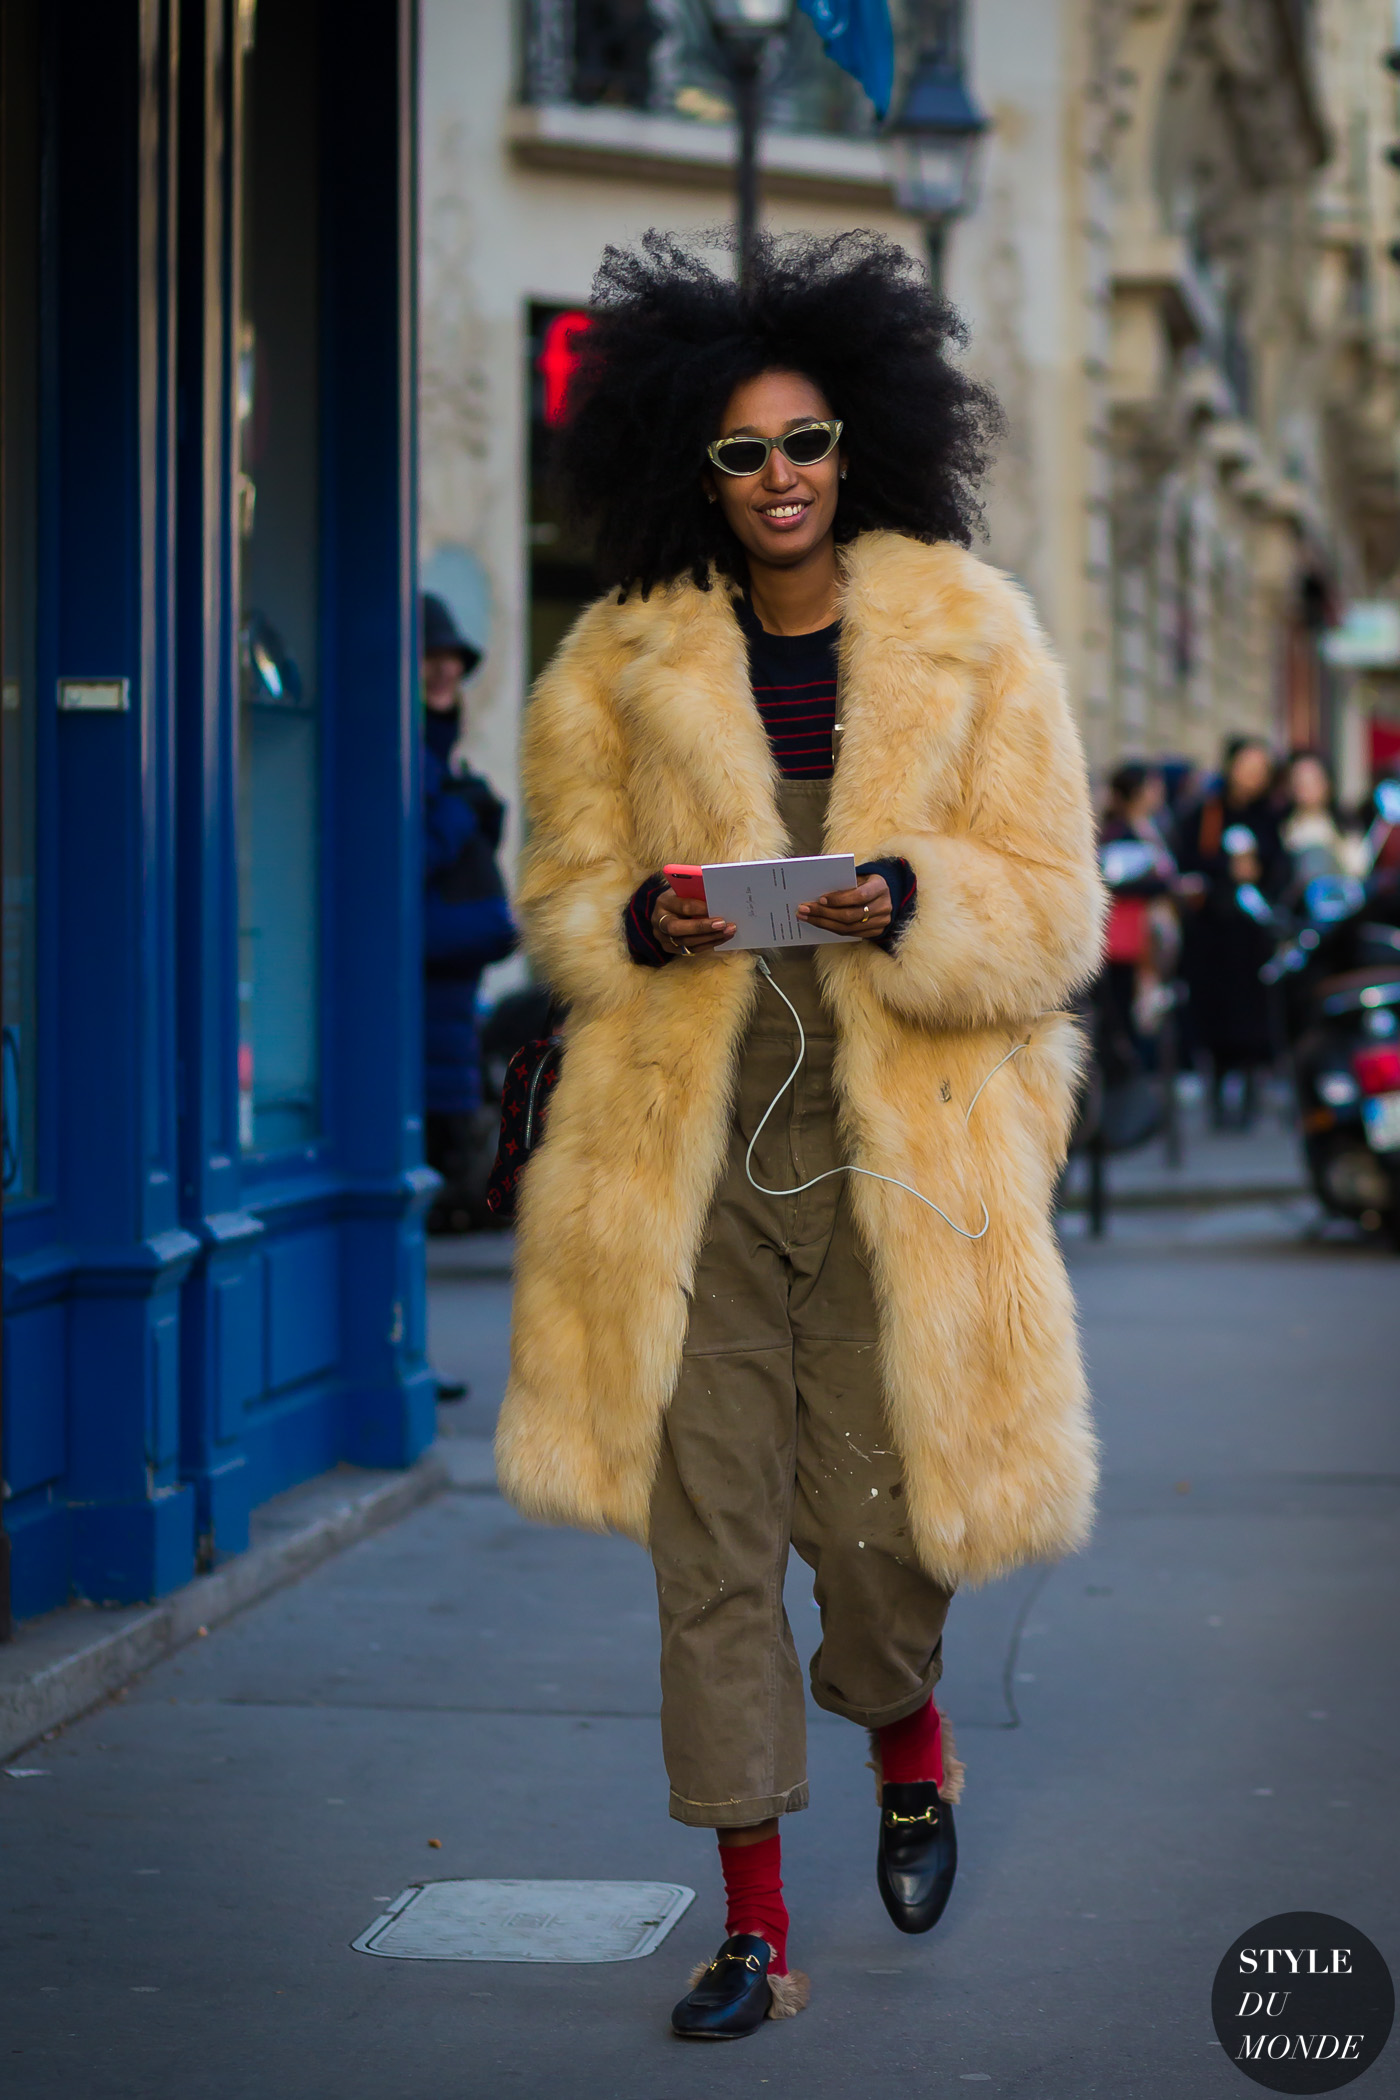 julia-sarr-jamois-by-styledumonde-street-style-fashion-photography